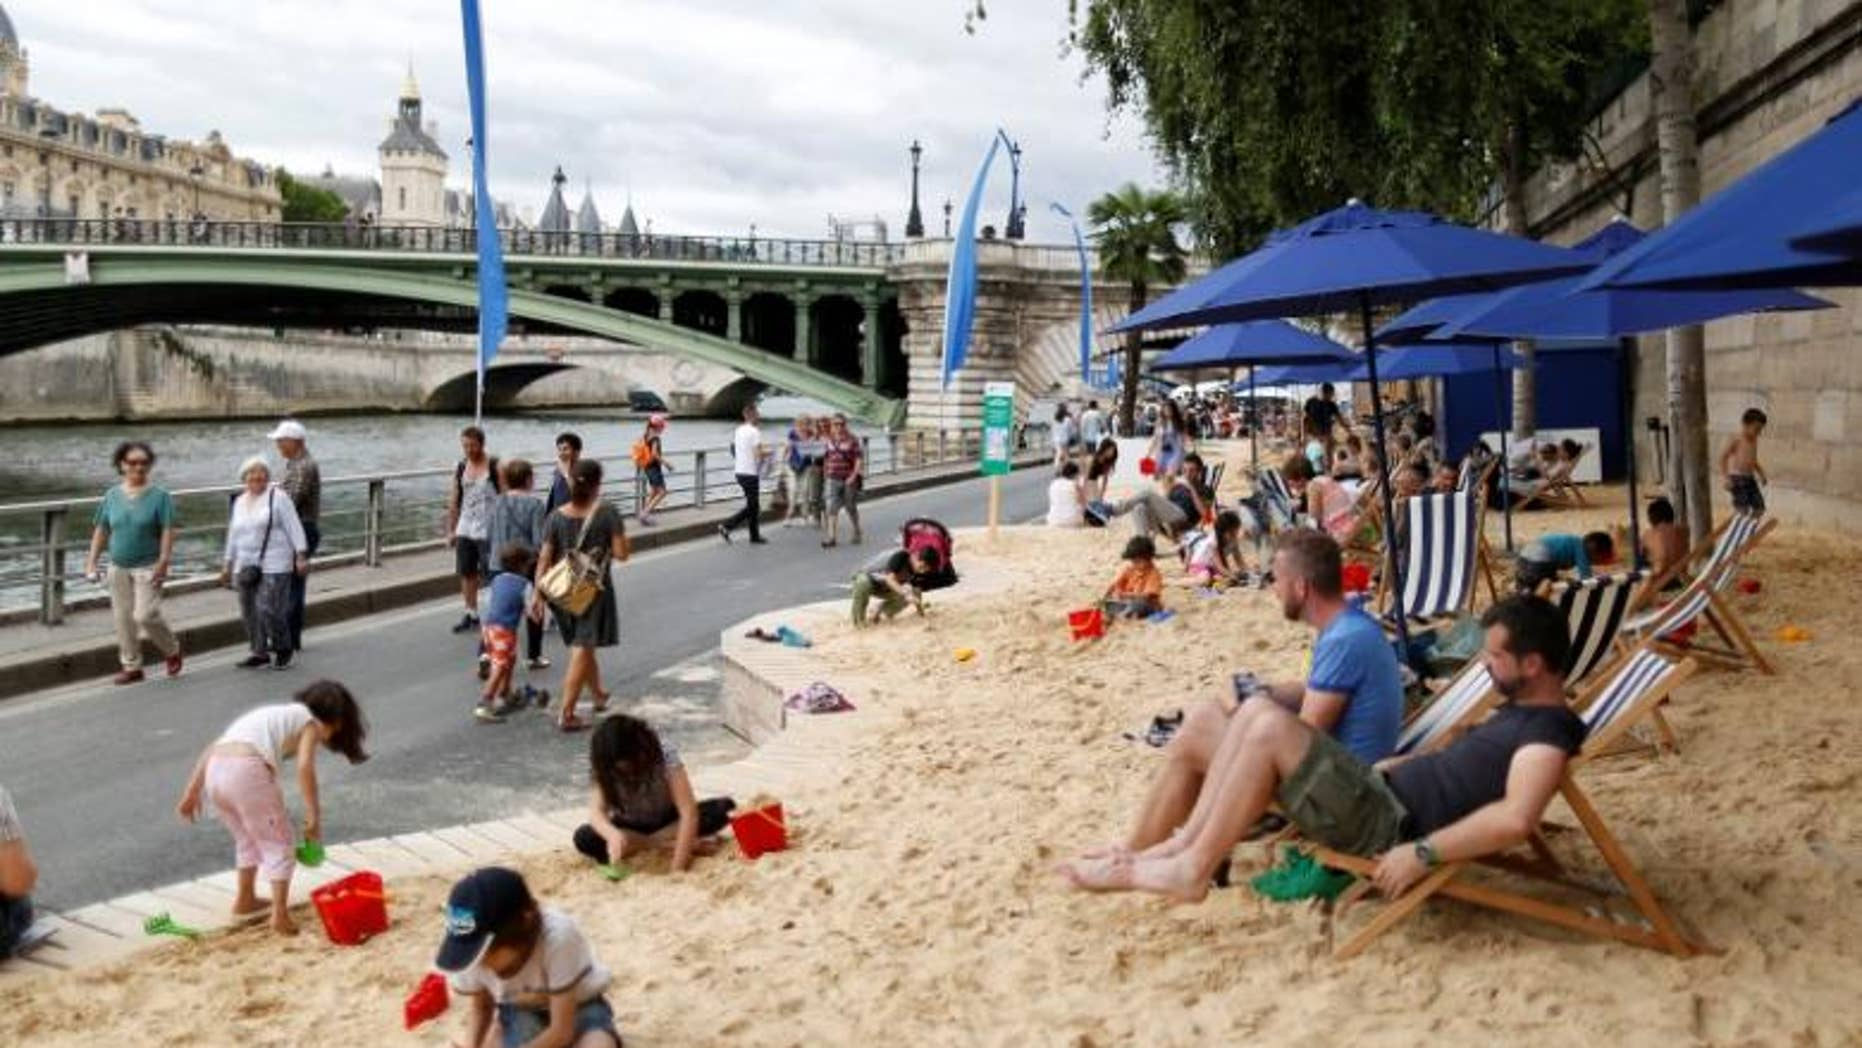 ''Paris Plages'' (Paris Beach) opened along the banks of River Seine in Paris, France last summer.